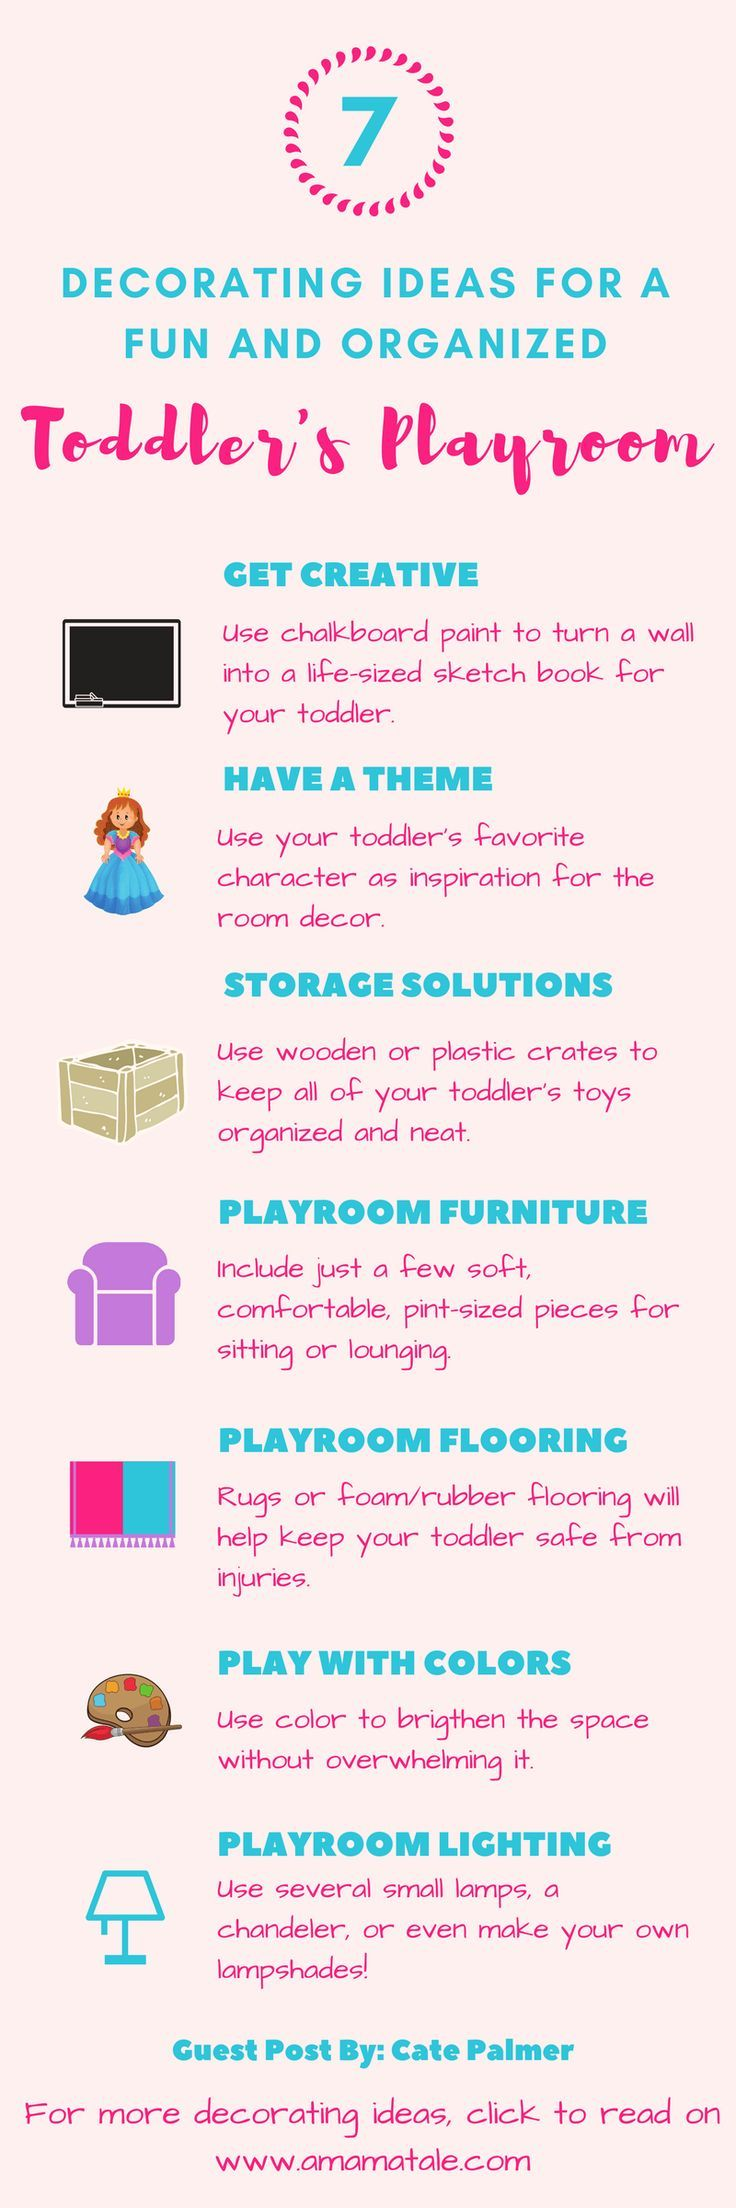 Frugal tips for organizing kids rooms thrifty nw mom fresh bedrooms - 7 Decorating Ideas For A Fun And Organized Toddler Playroom Home Decor Diy